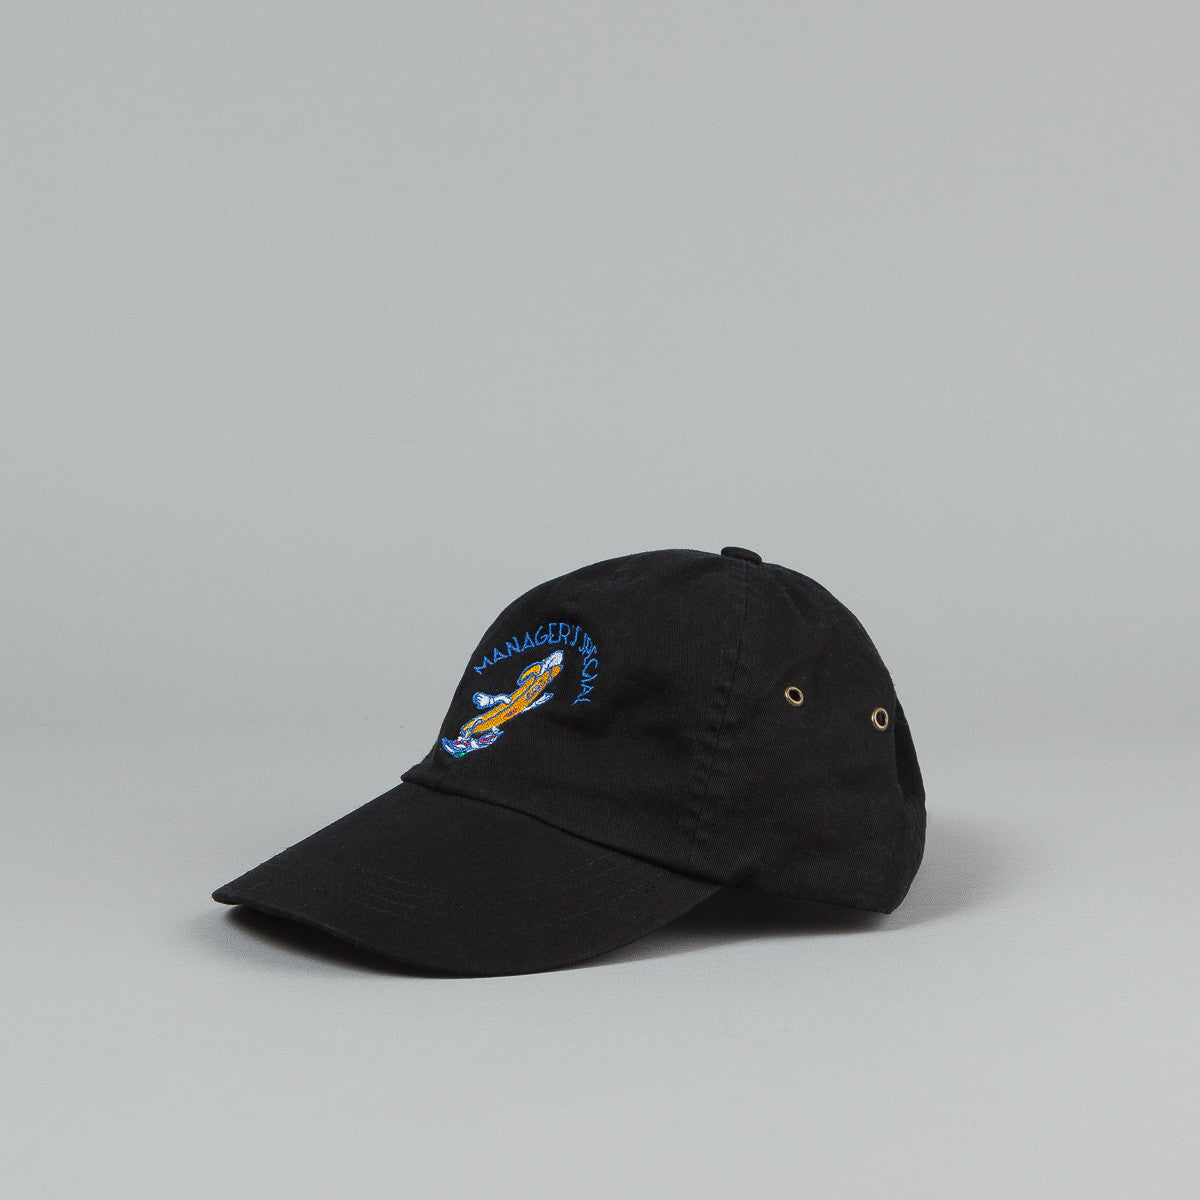 Manager's Special Bobby The Banana Dad Cap - Black